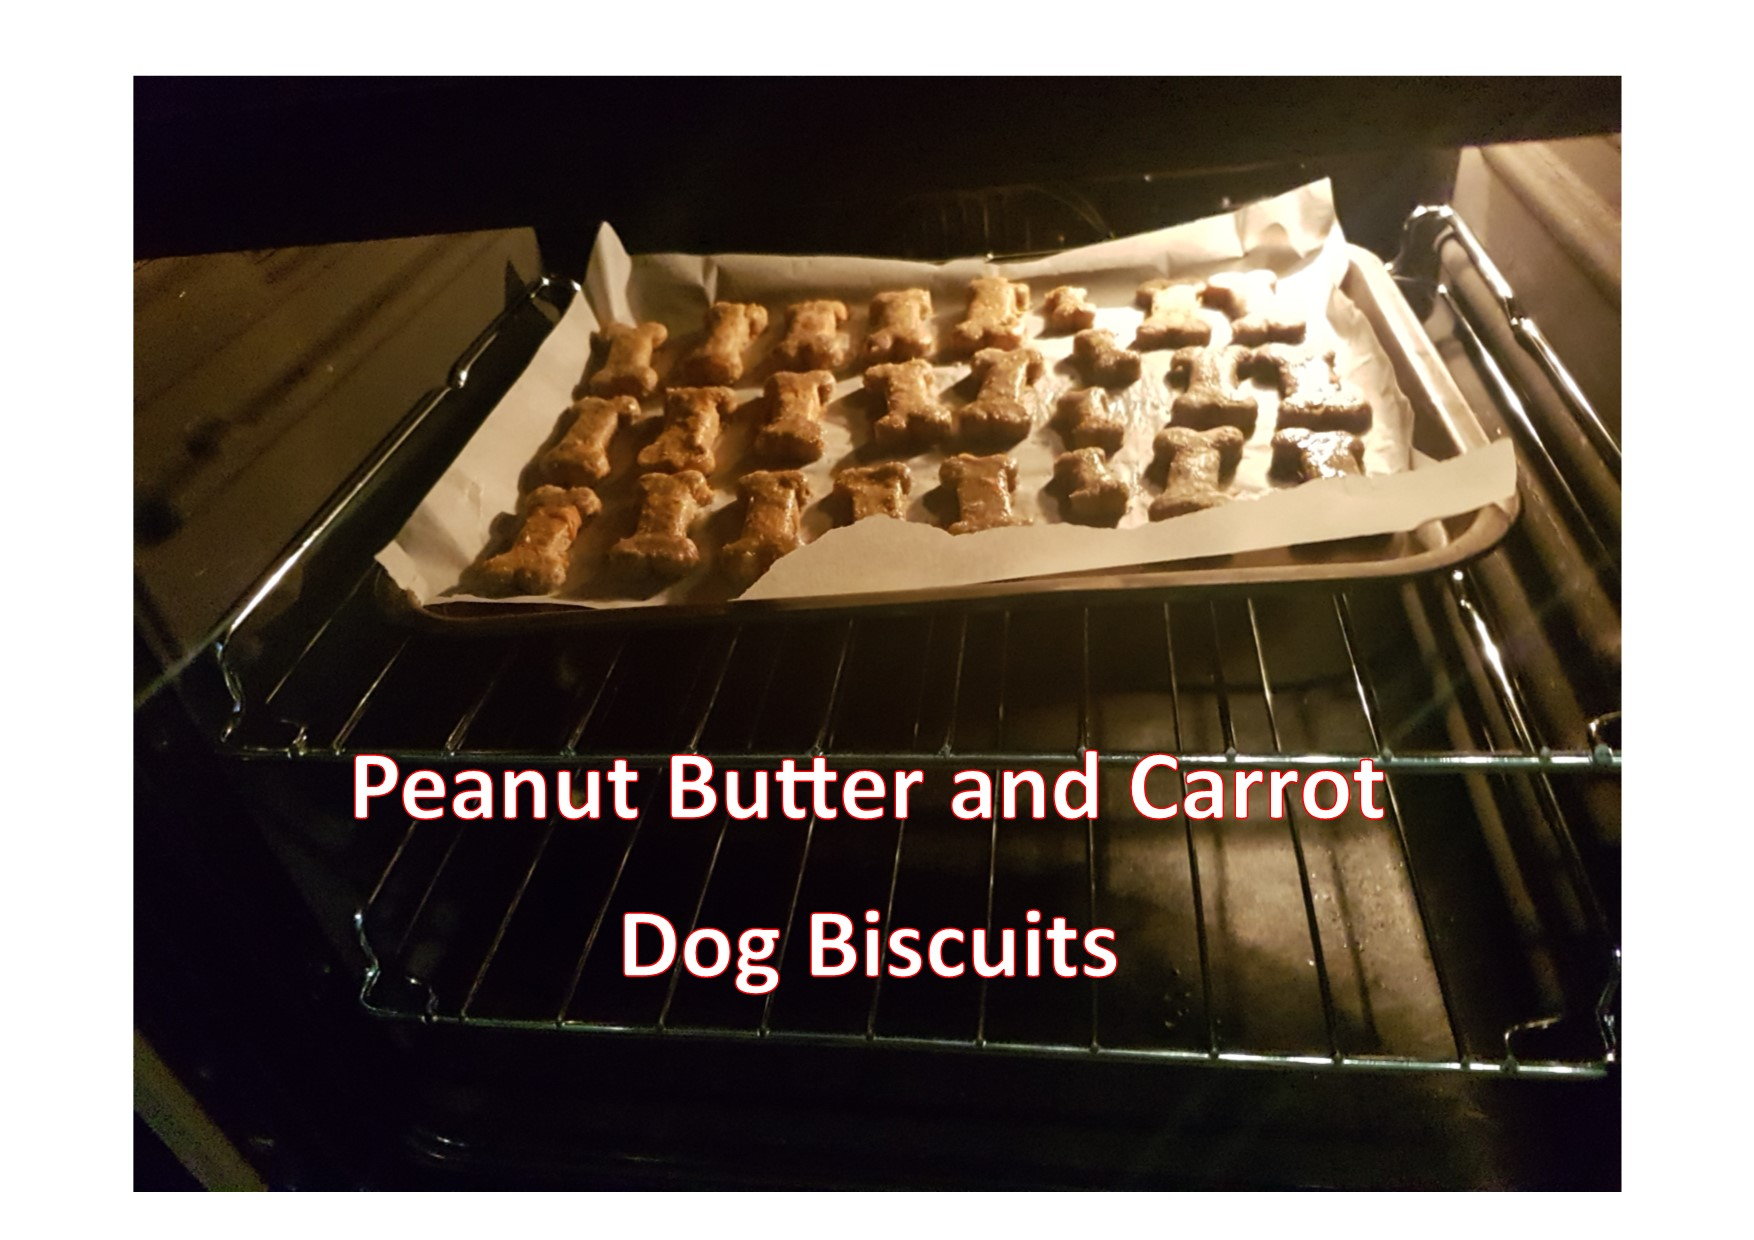 Baking my own dog biscuits for Rosie